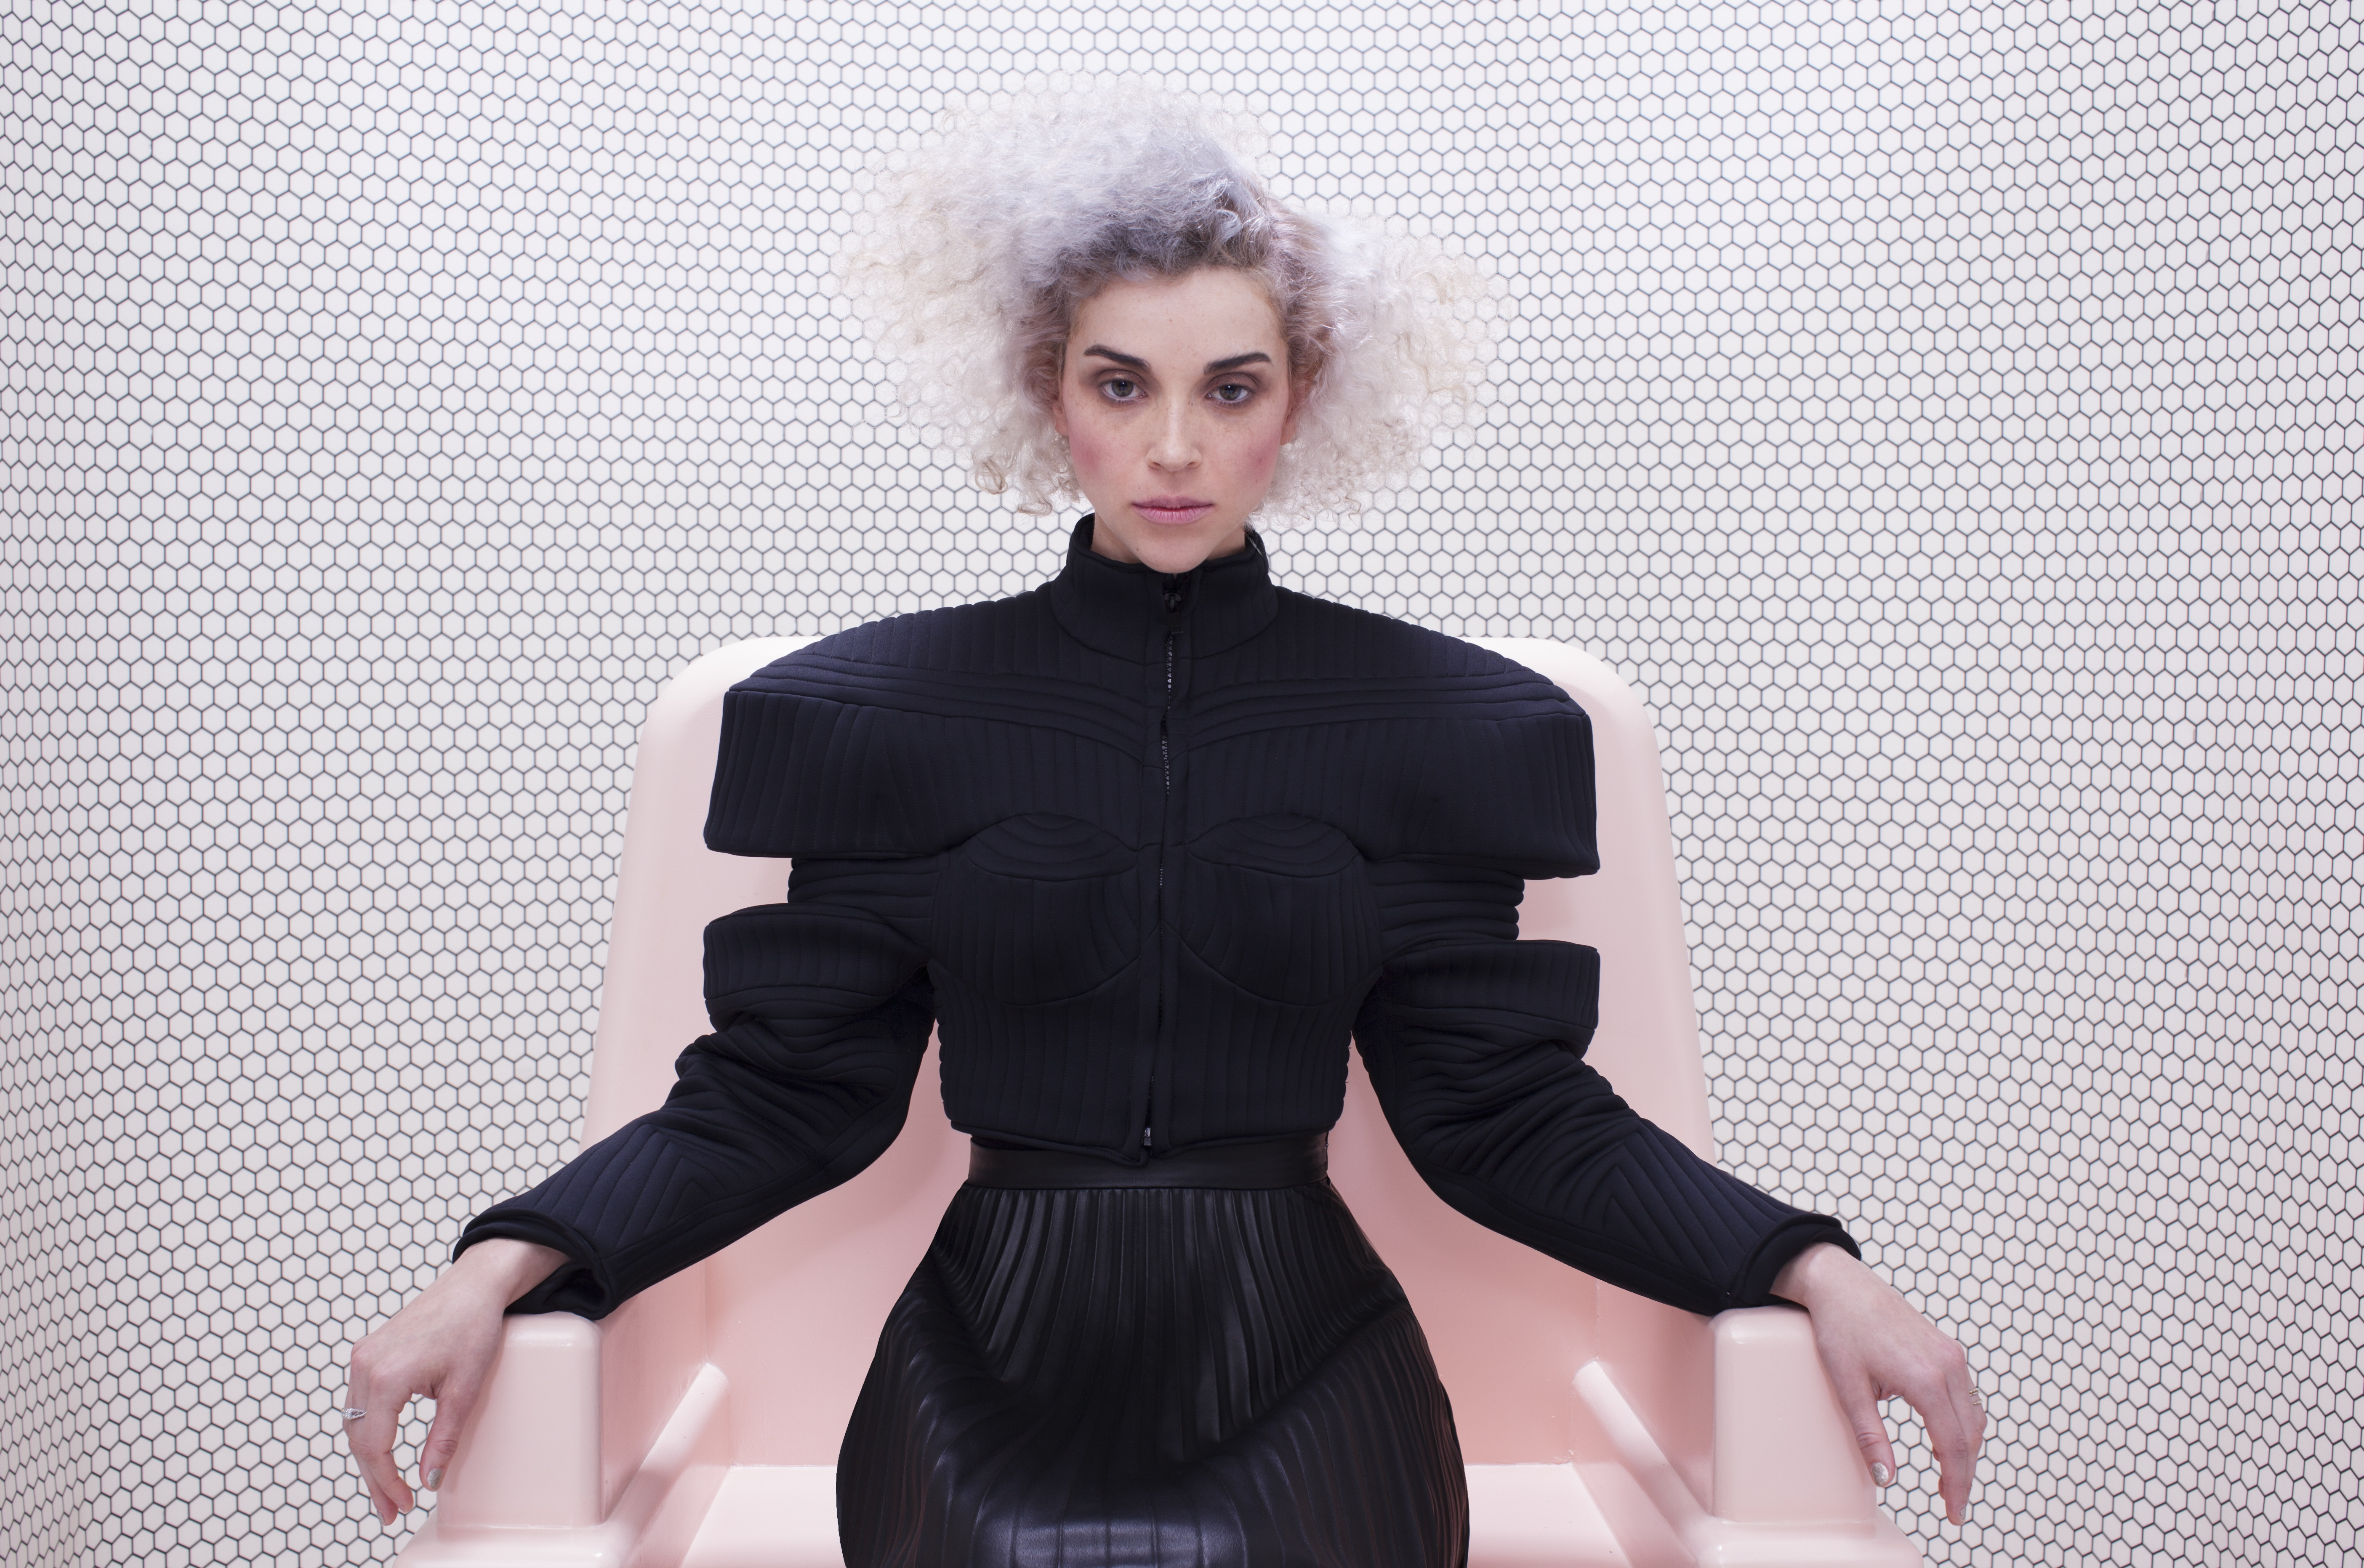 lpr photo Disrupting the Darkness: St. Vincent, Blondie, and Rhye on David Lynch